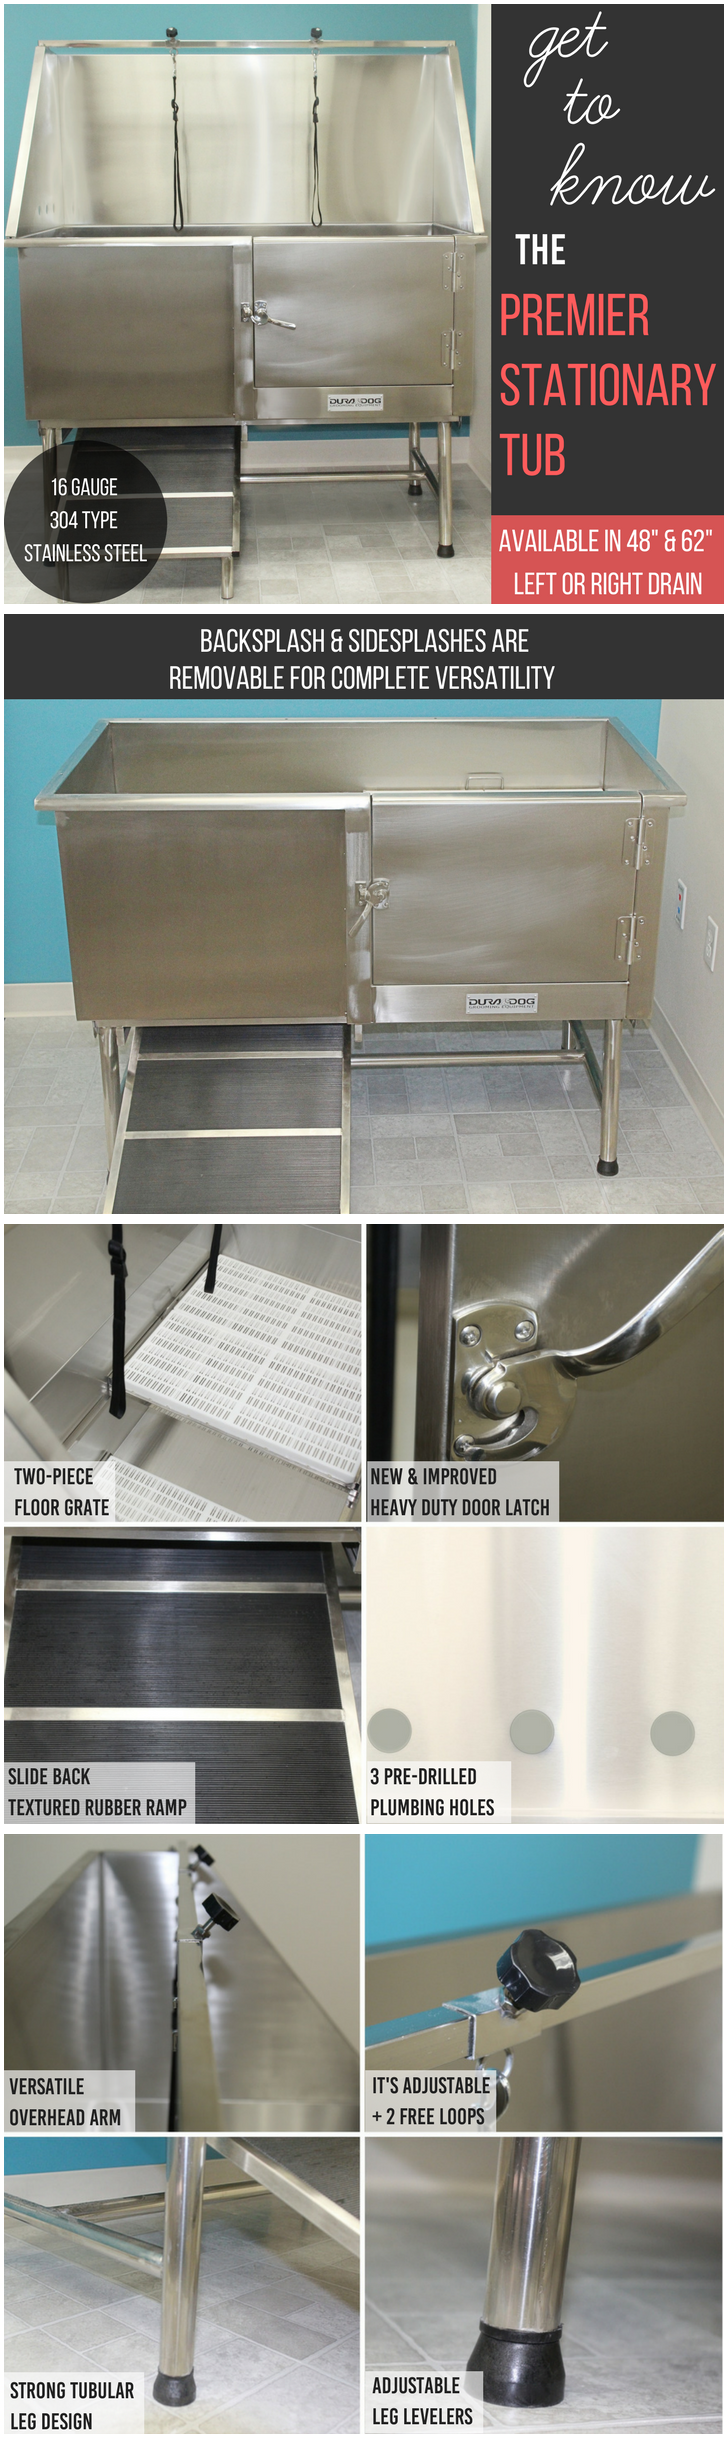 Dura Dog Premier Stationary Stainless Steel Tub 62\